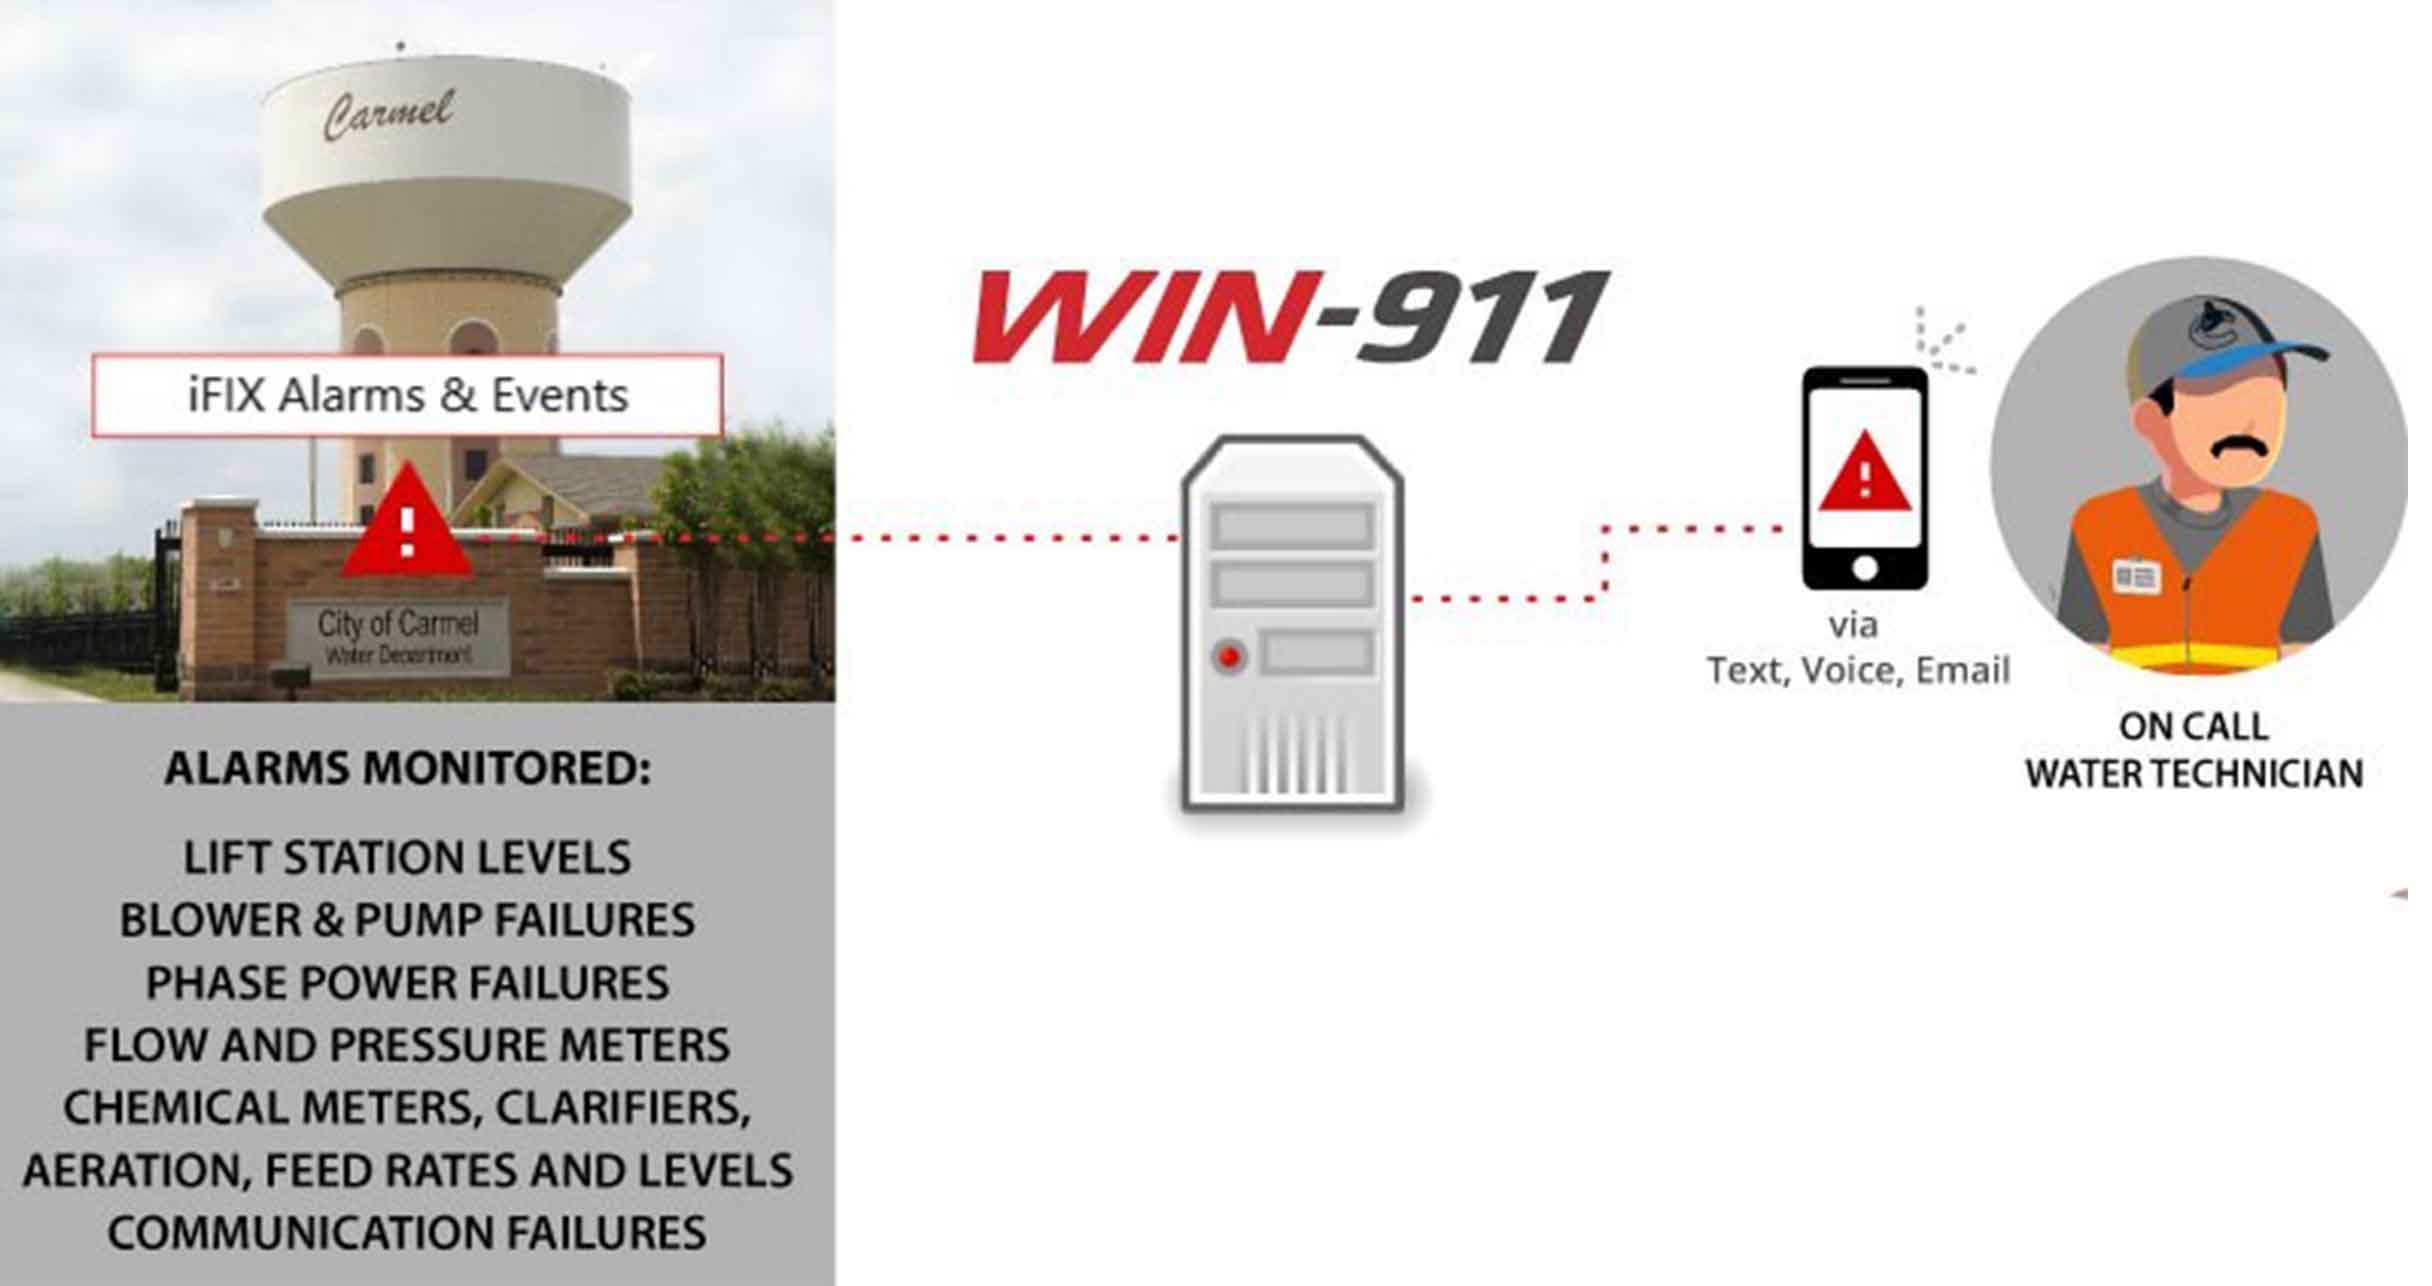 WIN-911 in use by City of Carmel, IN helps operators understand alarms